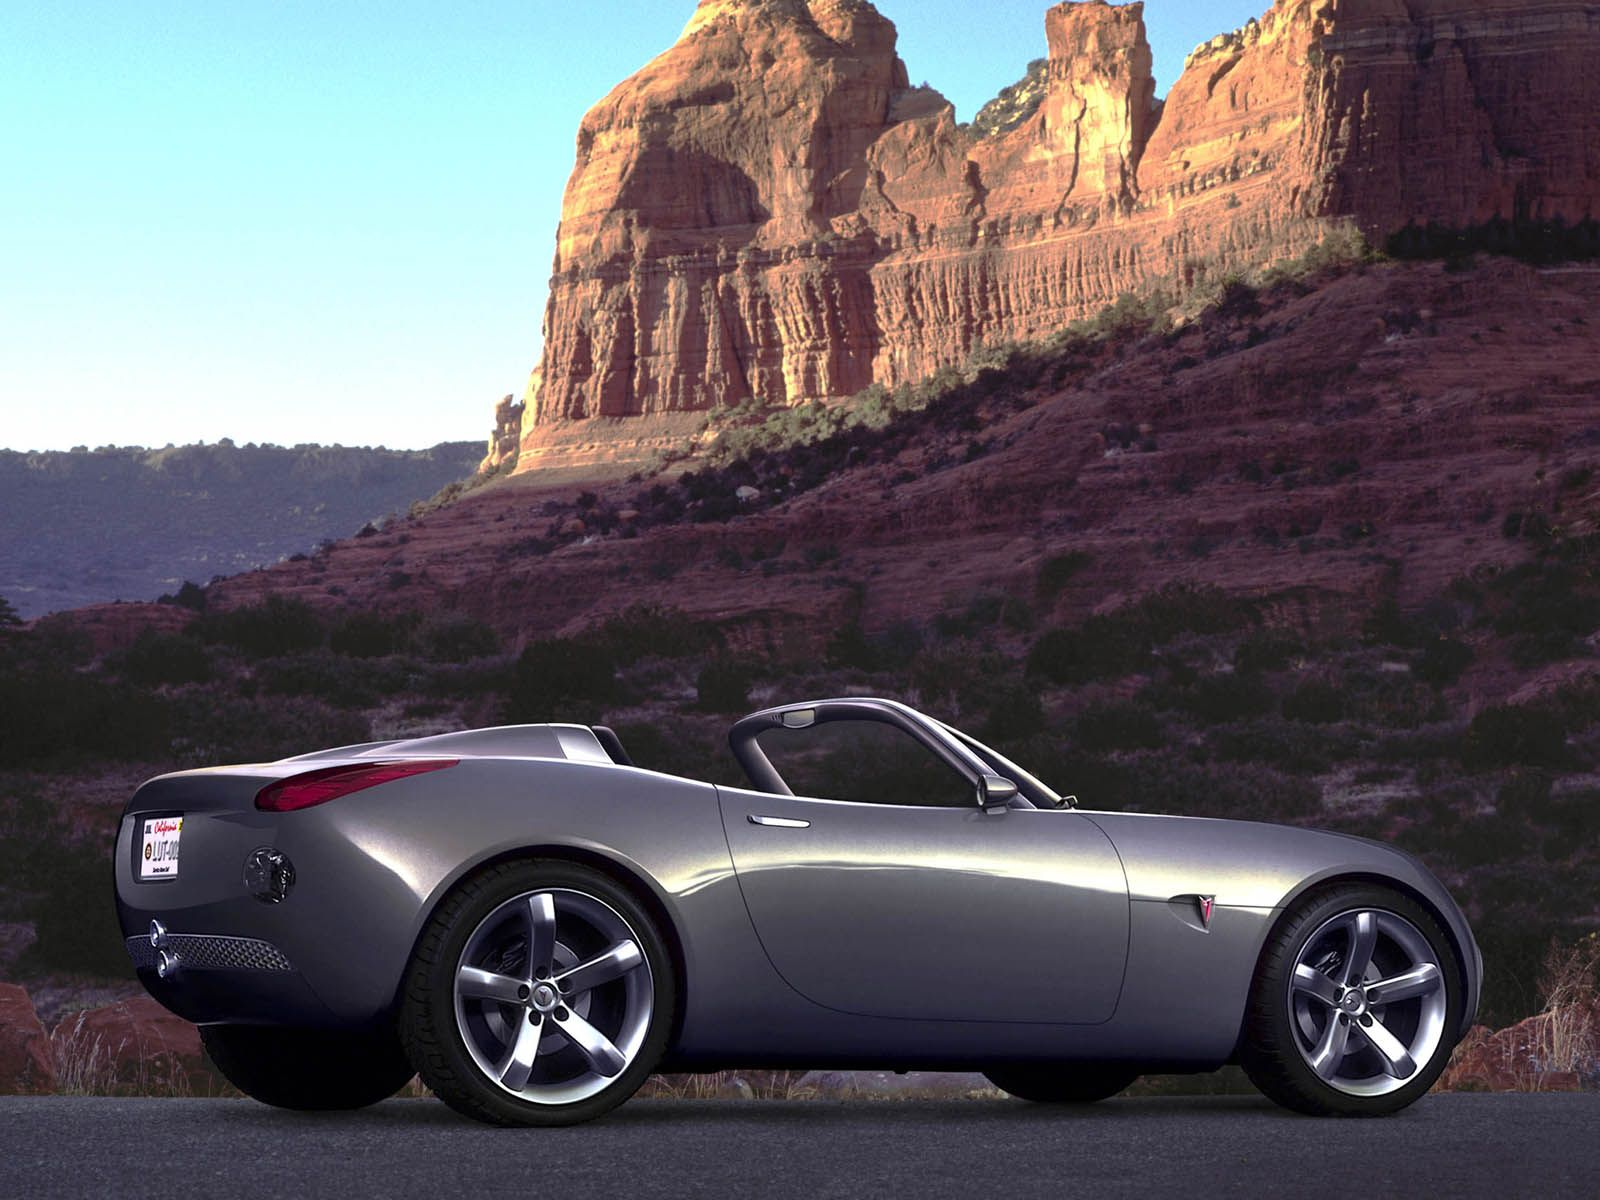 Pontiac Solstice photo 8540